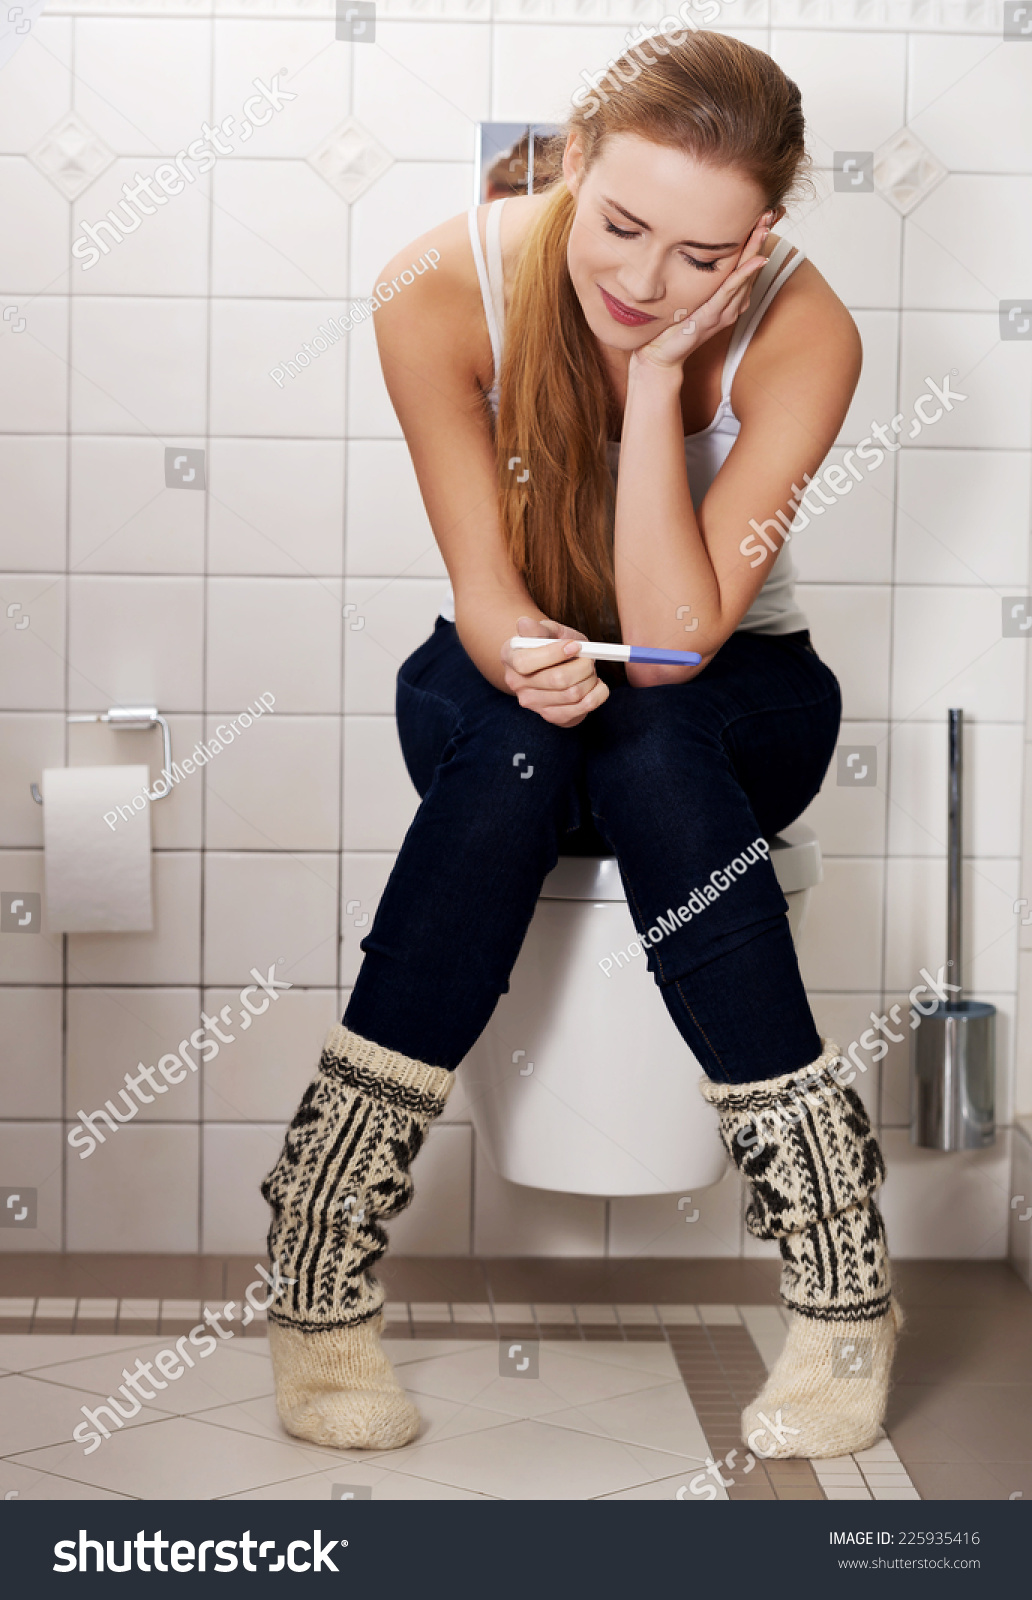 Portrait Of A Young Woman Sitting On A Toilet High-Res